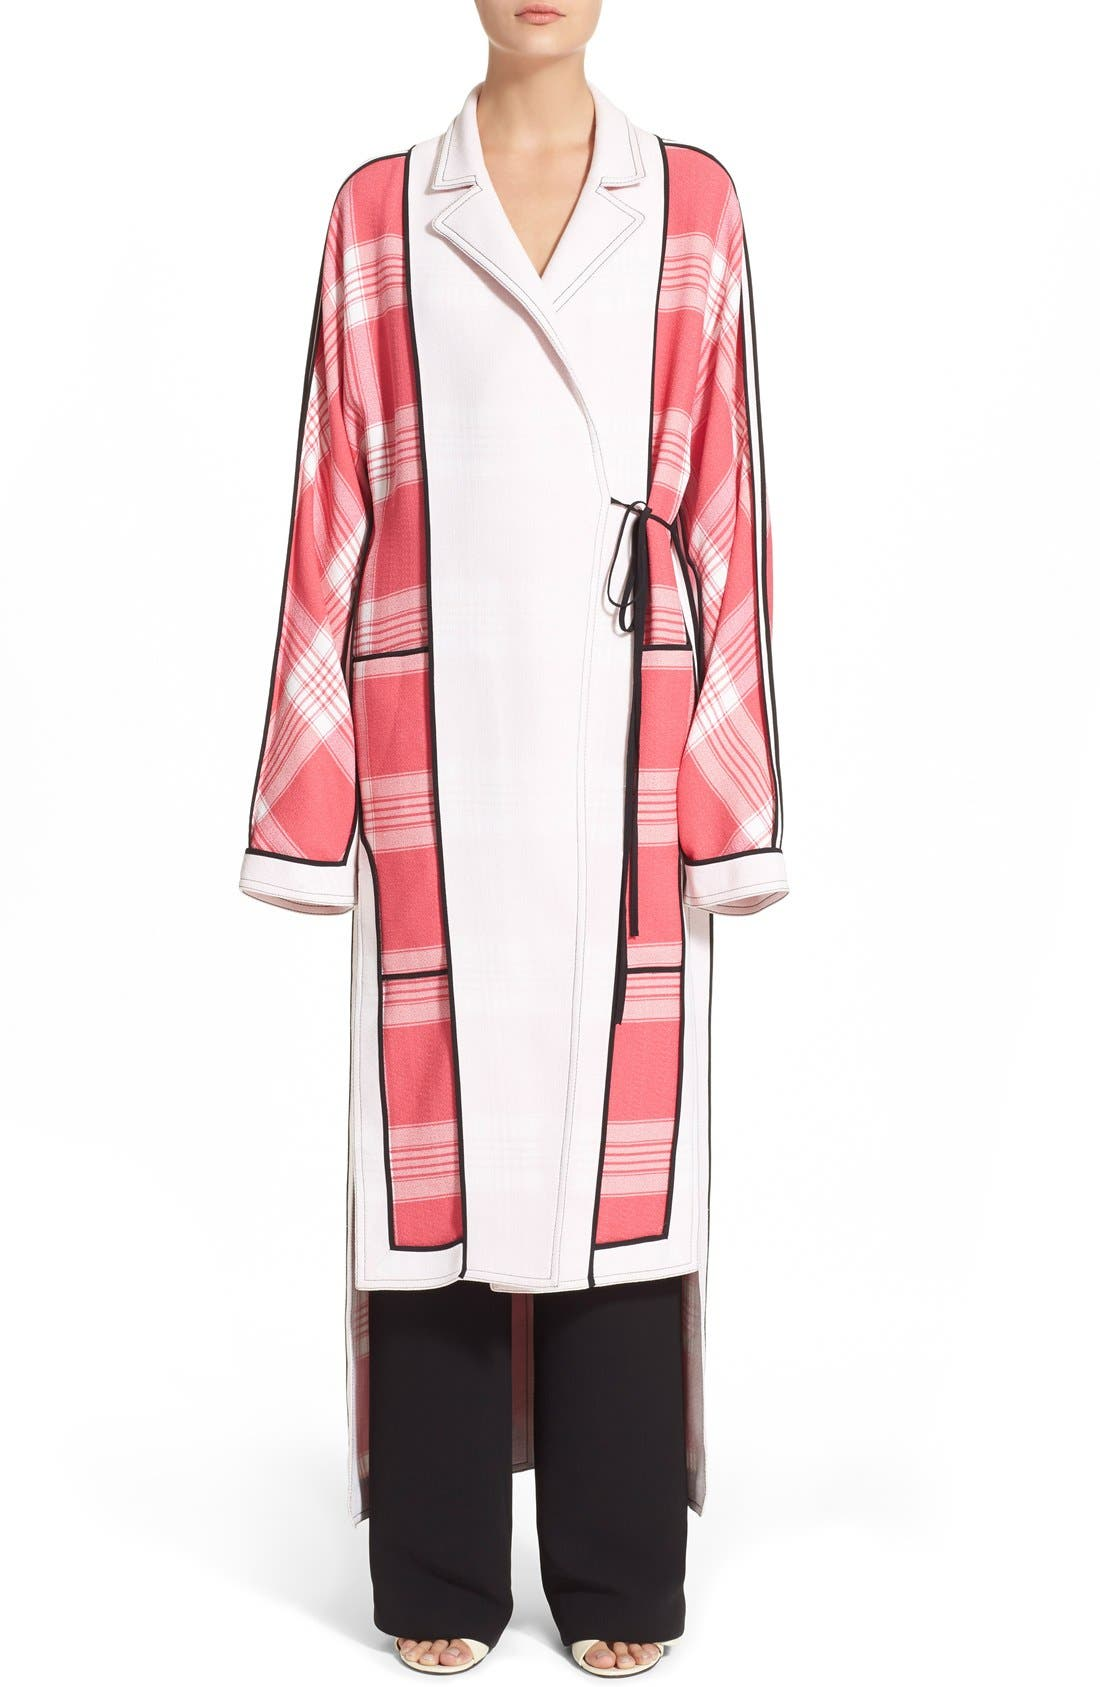 Main Image - ACNE Studios 'Vaughn Frosted' Tie Front Cardigan